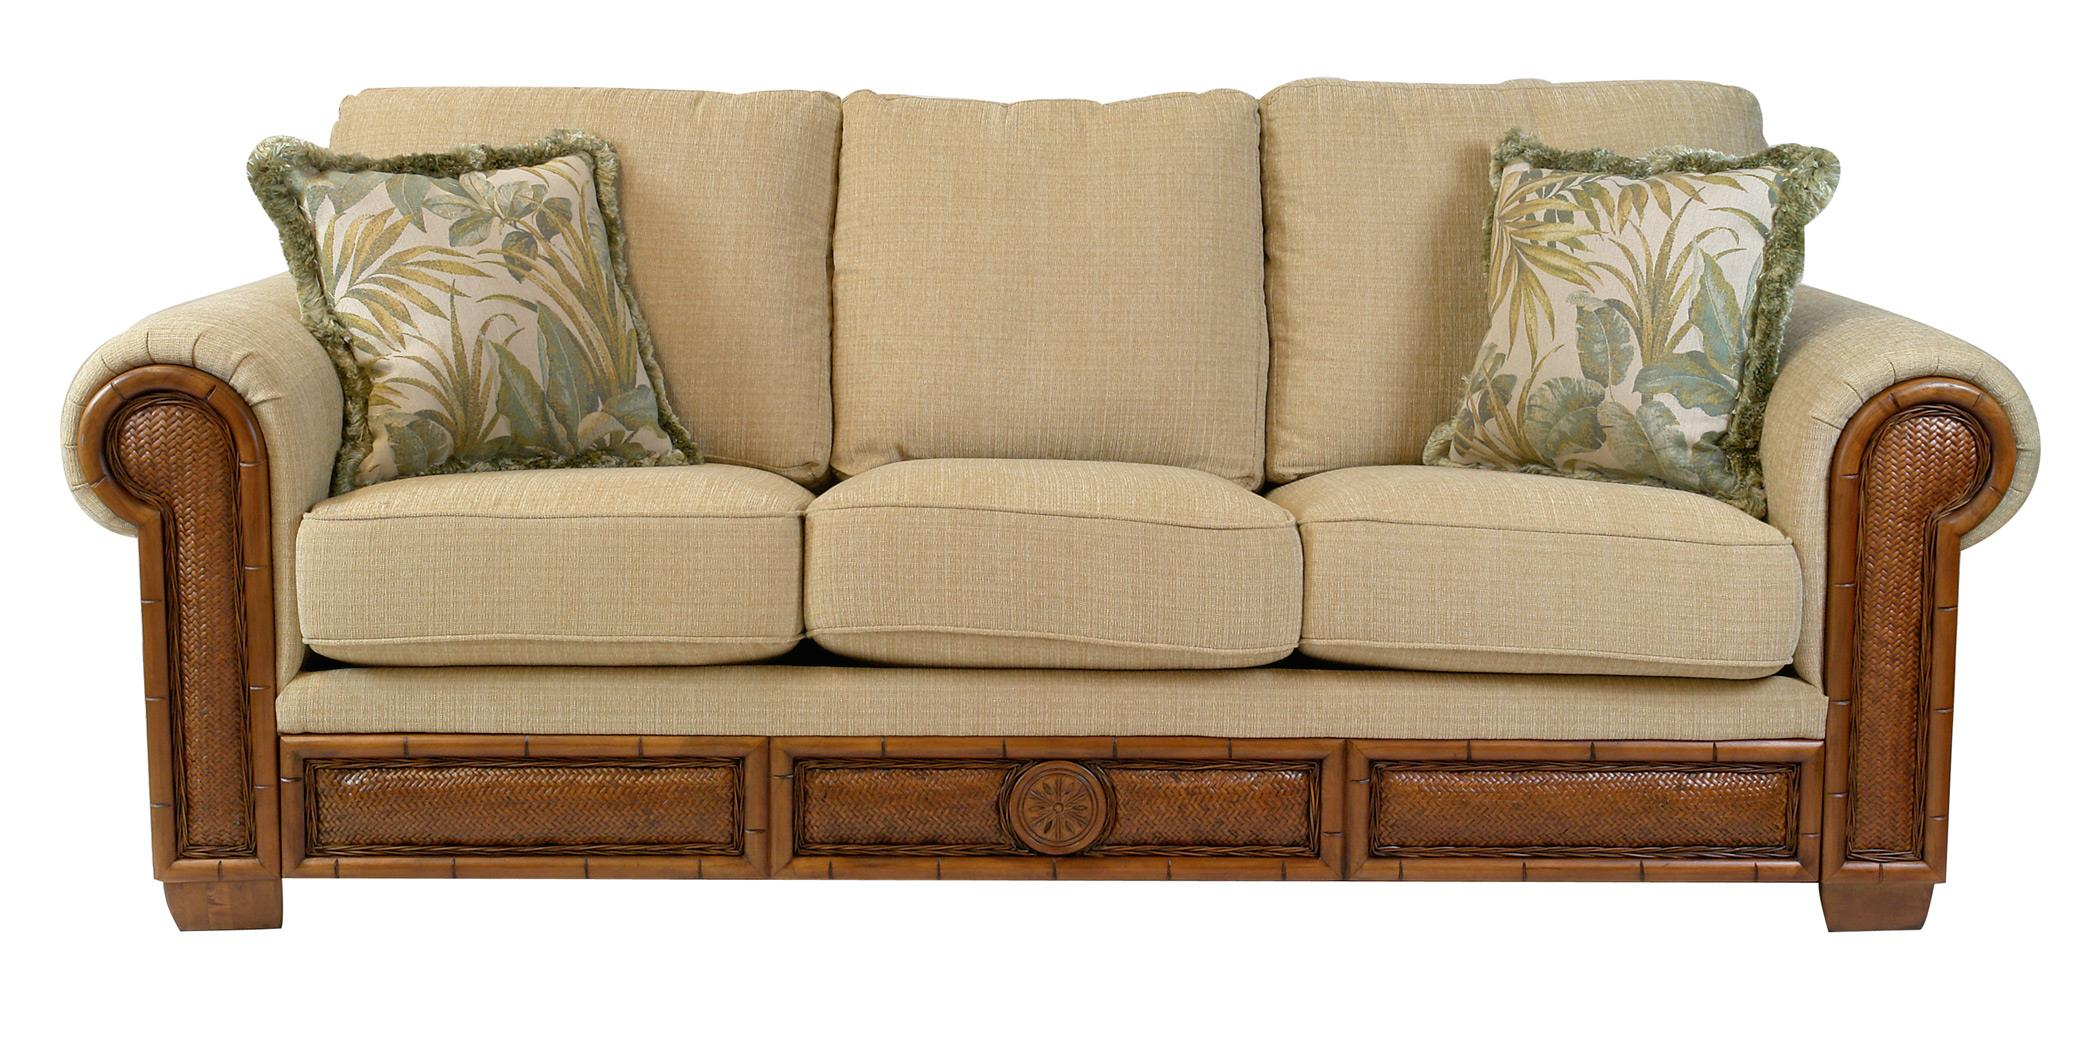 Synergy Home Furnishings Bailey Sofa - Item Number: 896-00 BAILEY